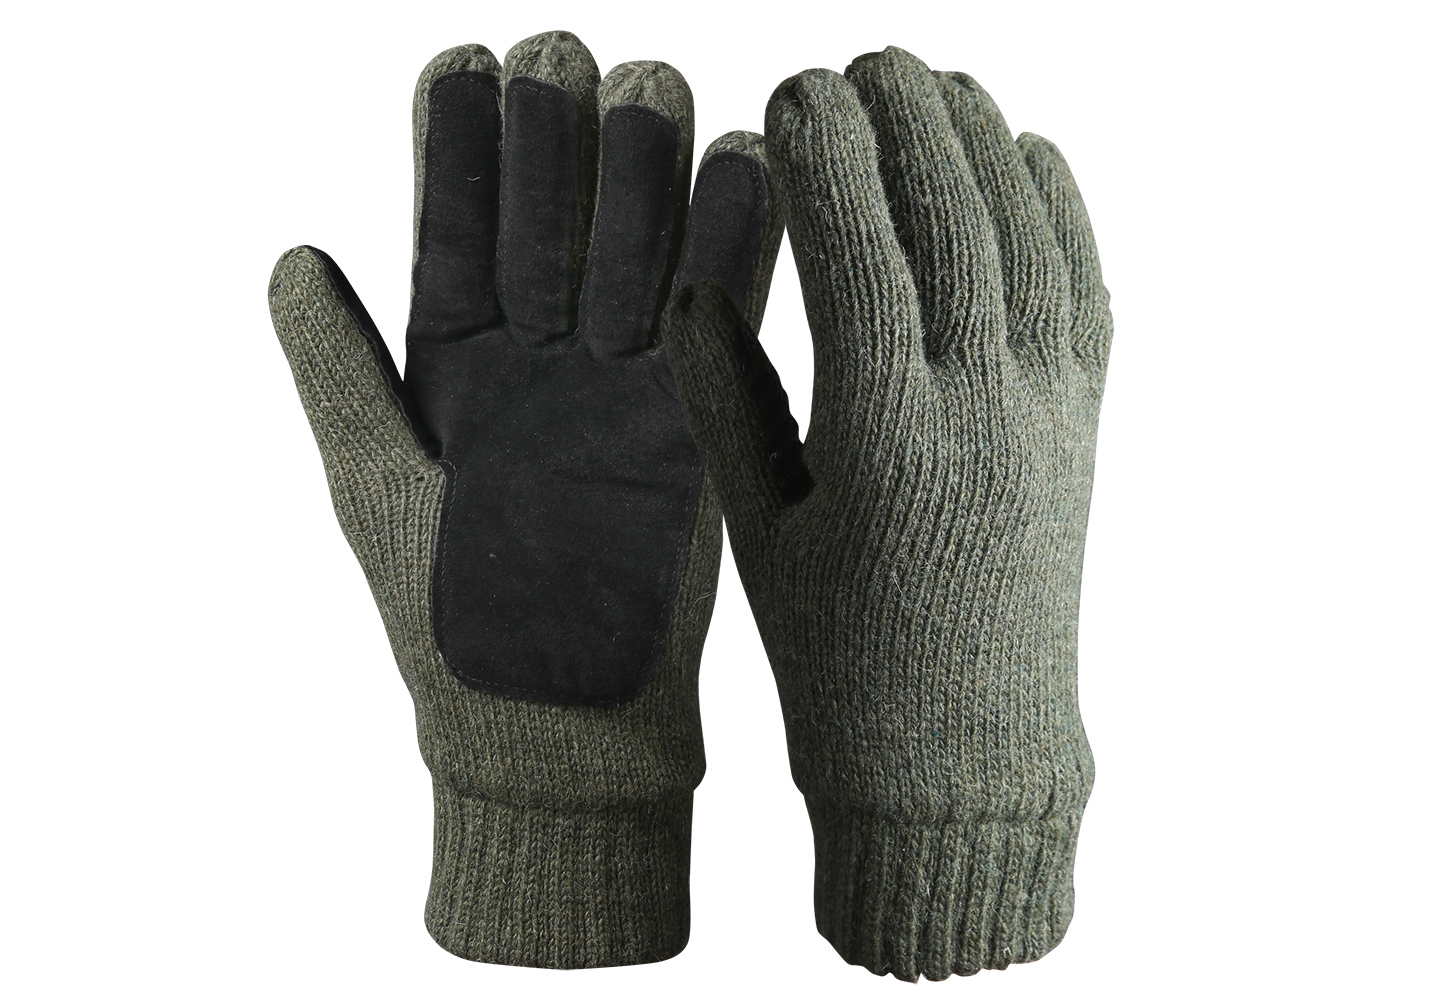 Ragg Wool Insulate Gloves/IWG-002-P